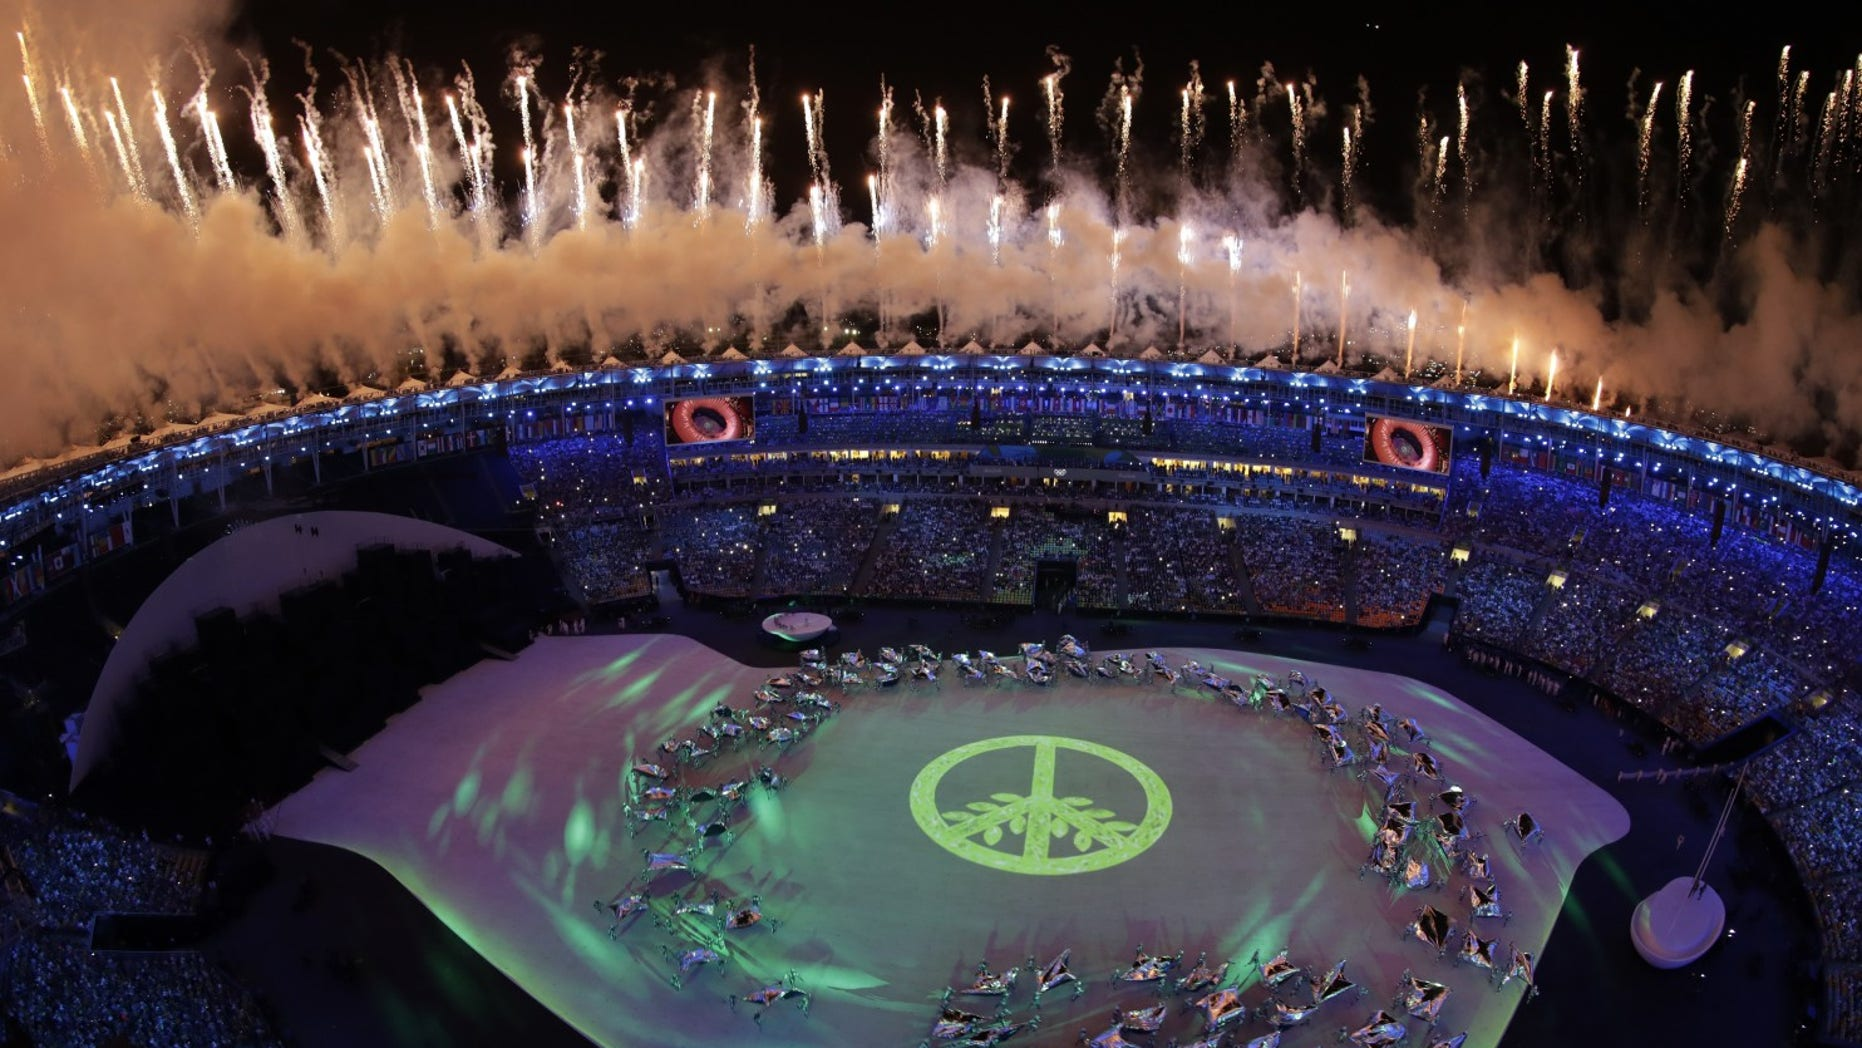 Fireworks light up the night sky over Maracana Stadium during the opening ceremony at the 2016 Summer Olympics in Rio de Janeiro, Brazil, Friday, Aug. 5, 2016.